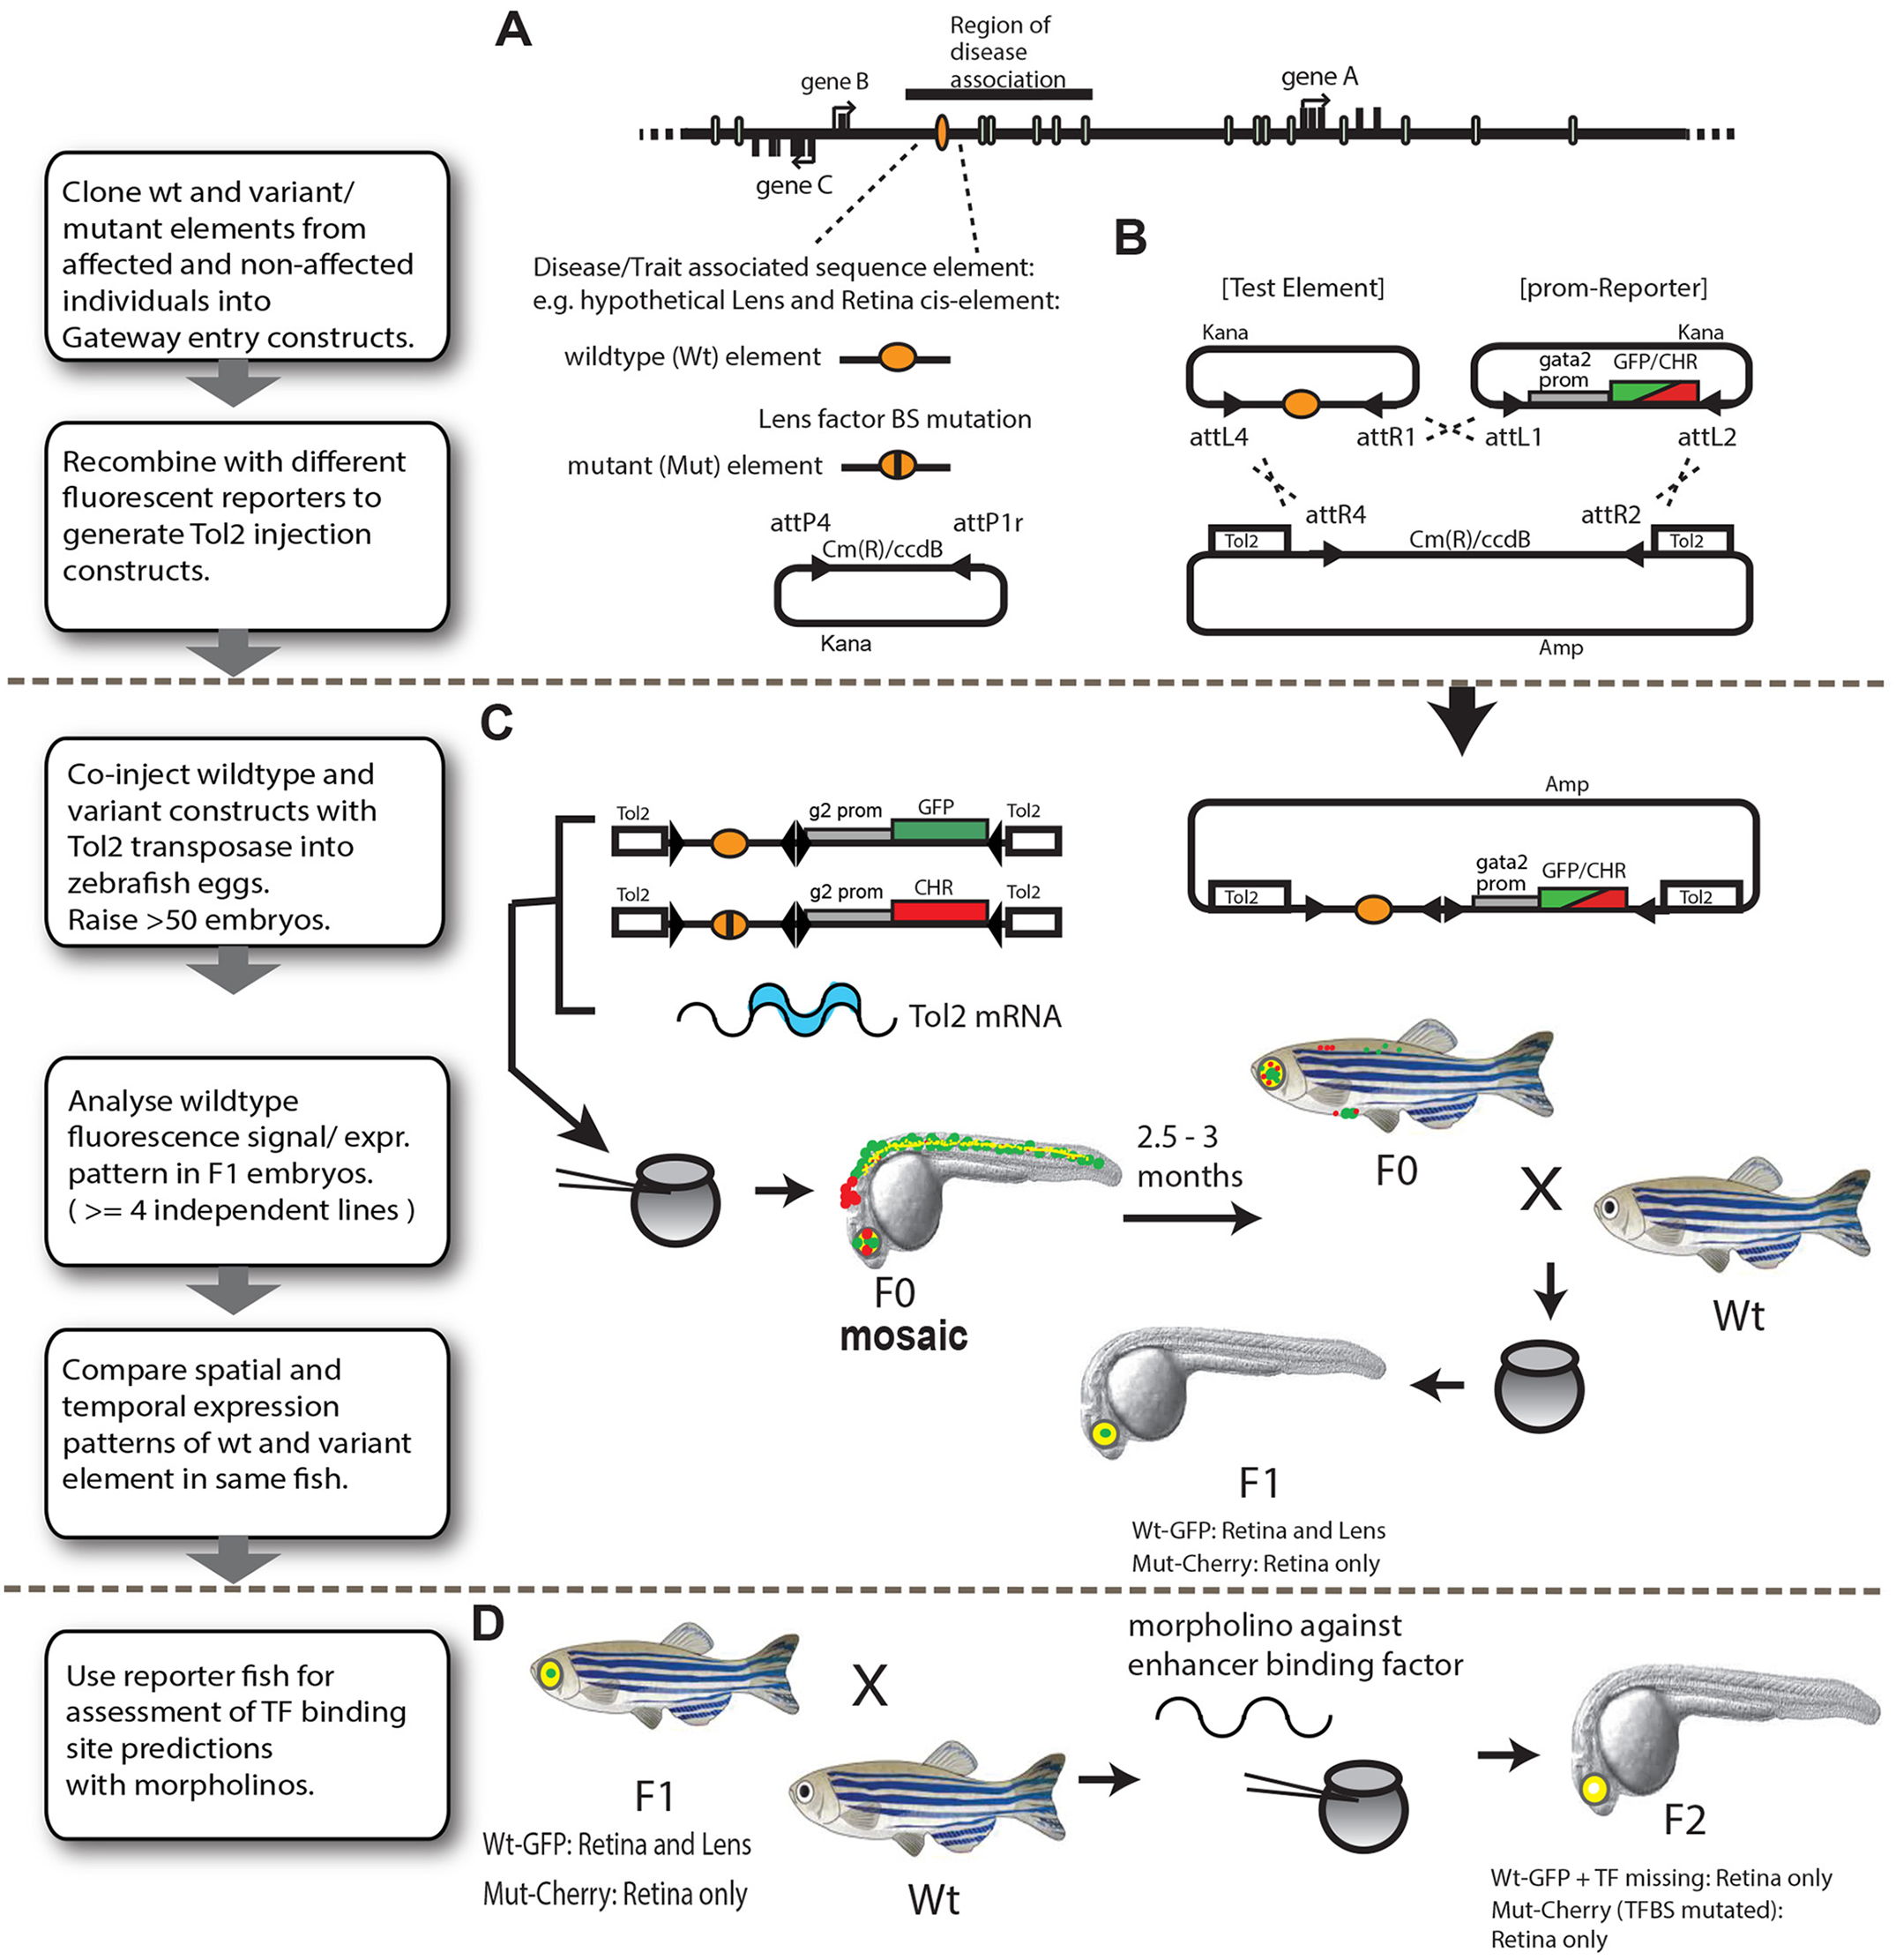 Schematic representation of the assay pipeline for <i>in vivo</i> characterisation of disease-associated cis-regulatory variants by dual-fluorescence reporter transgenic analysis in zebrafish.